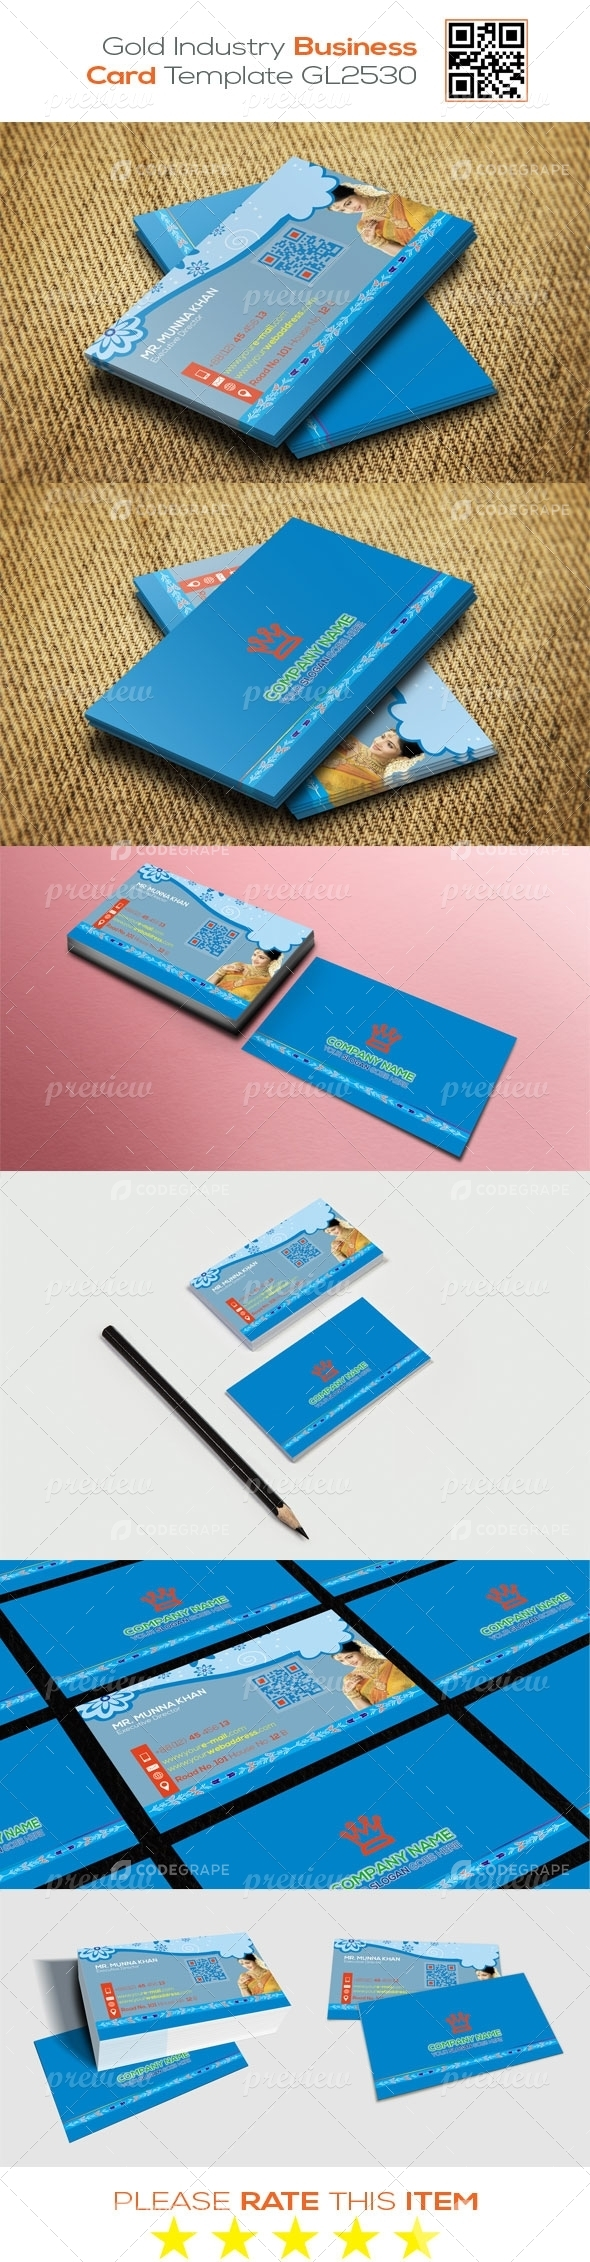 Gold Industry Business Card Template GL2530